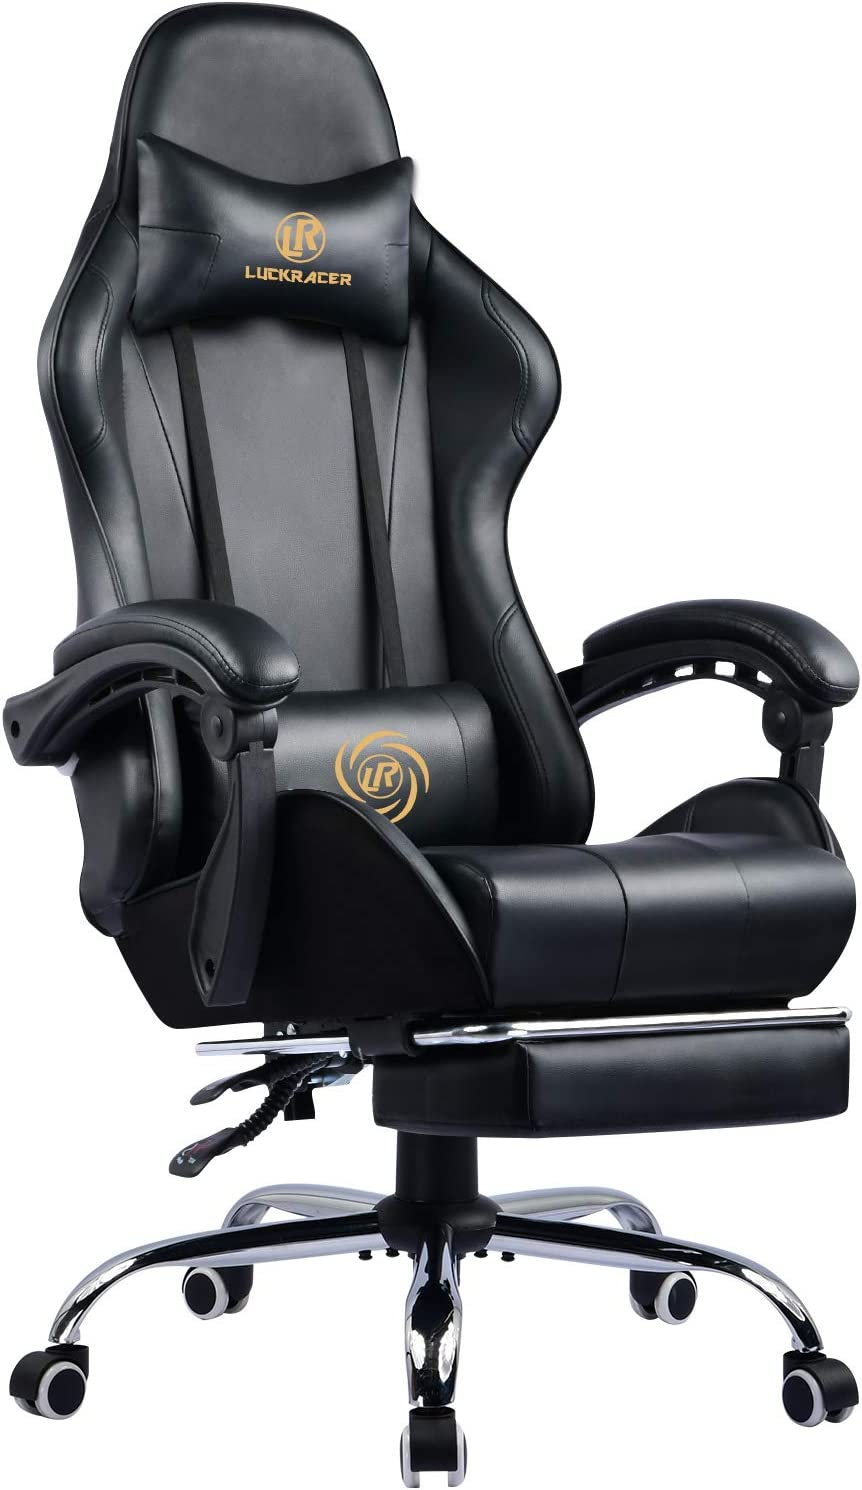 LUCKRACER Office Gaming Chair with footrest